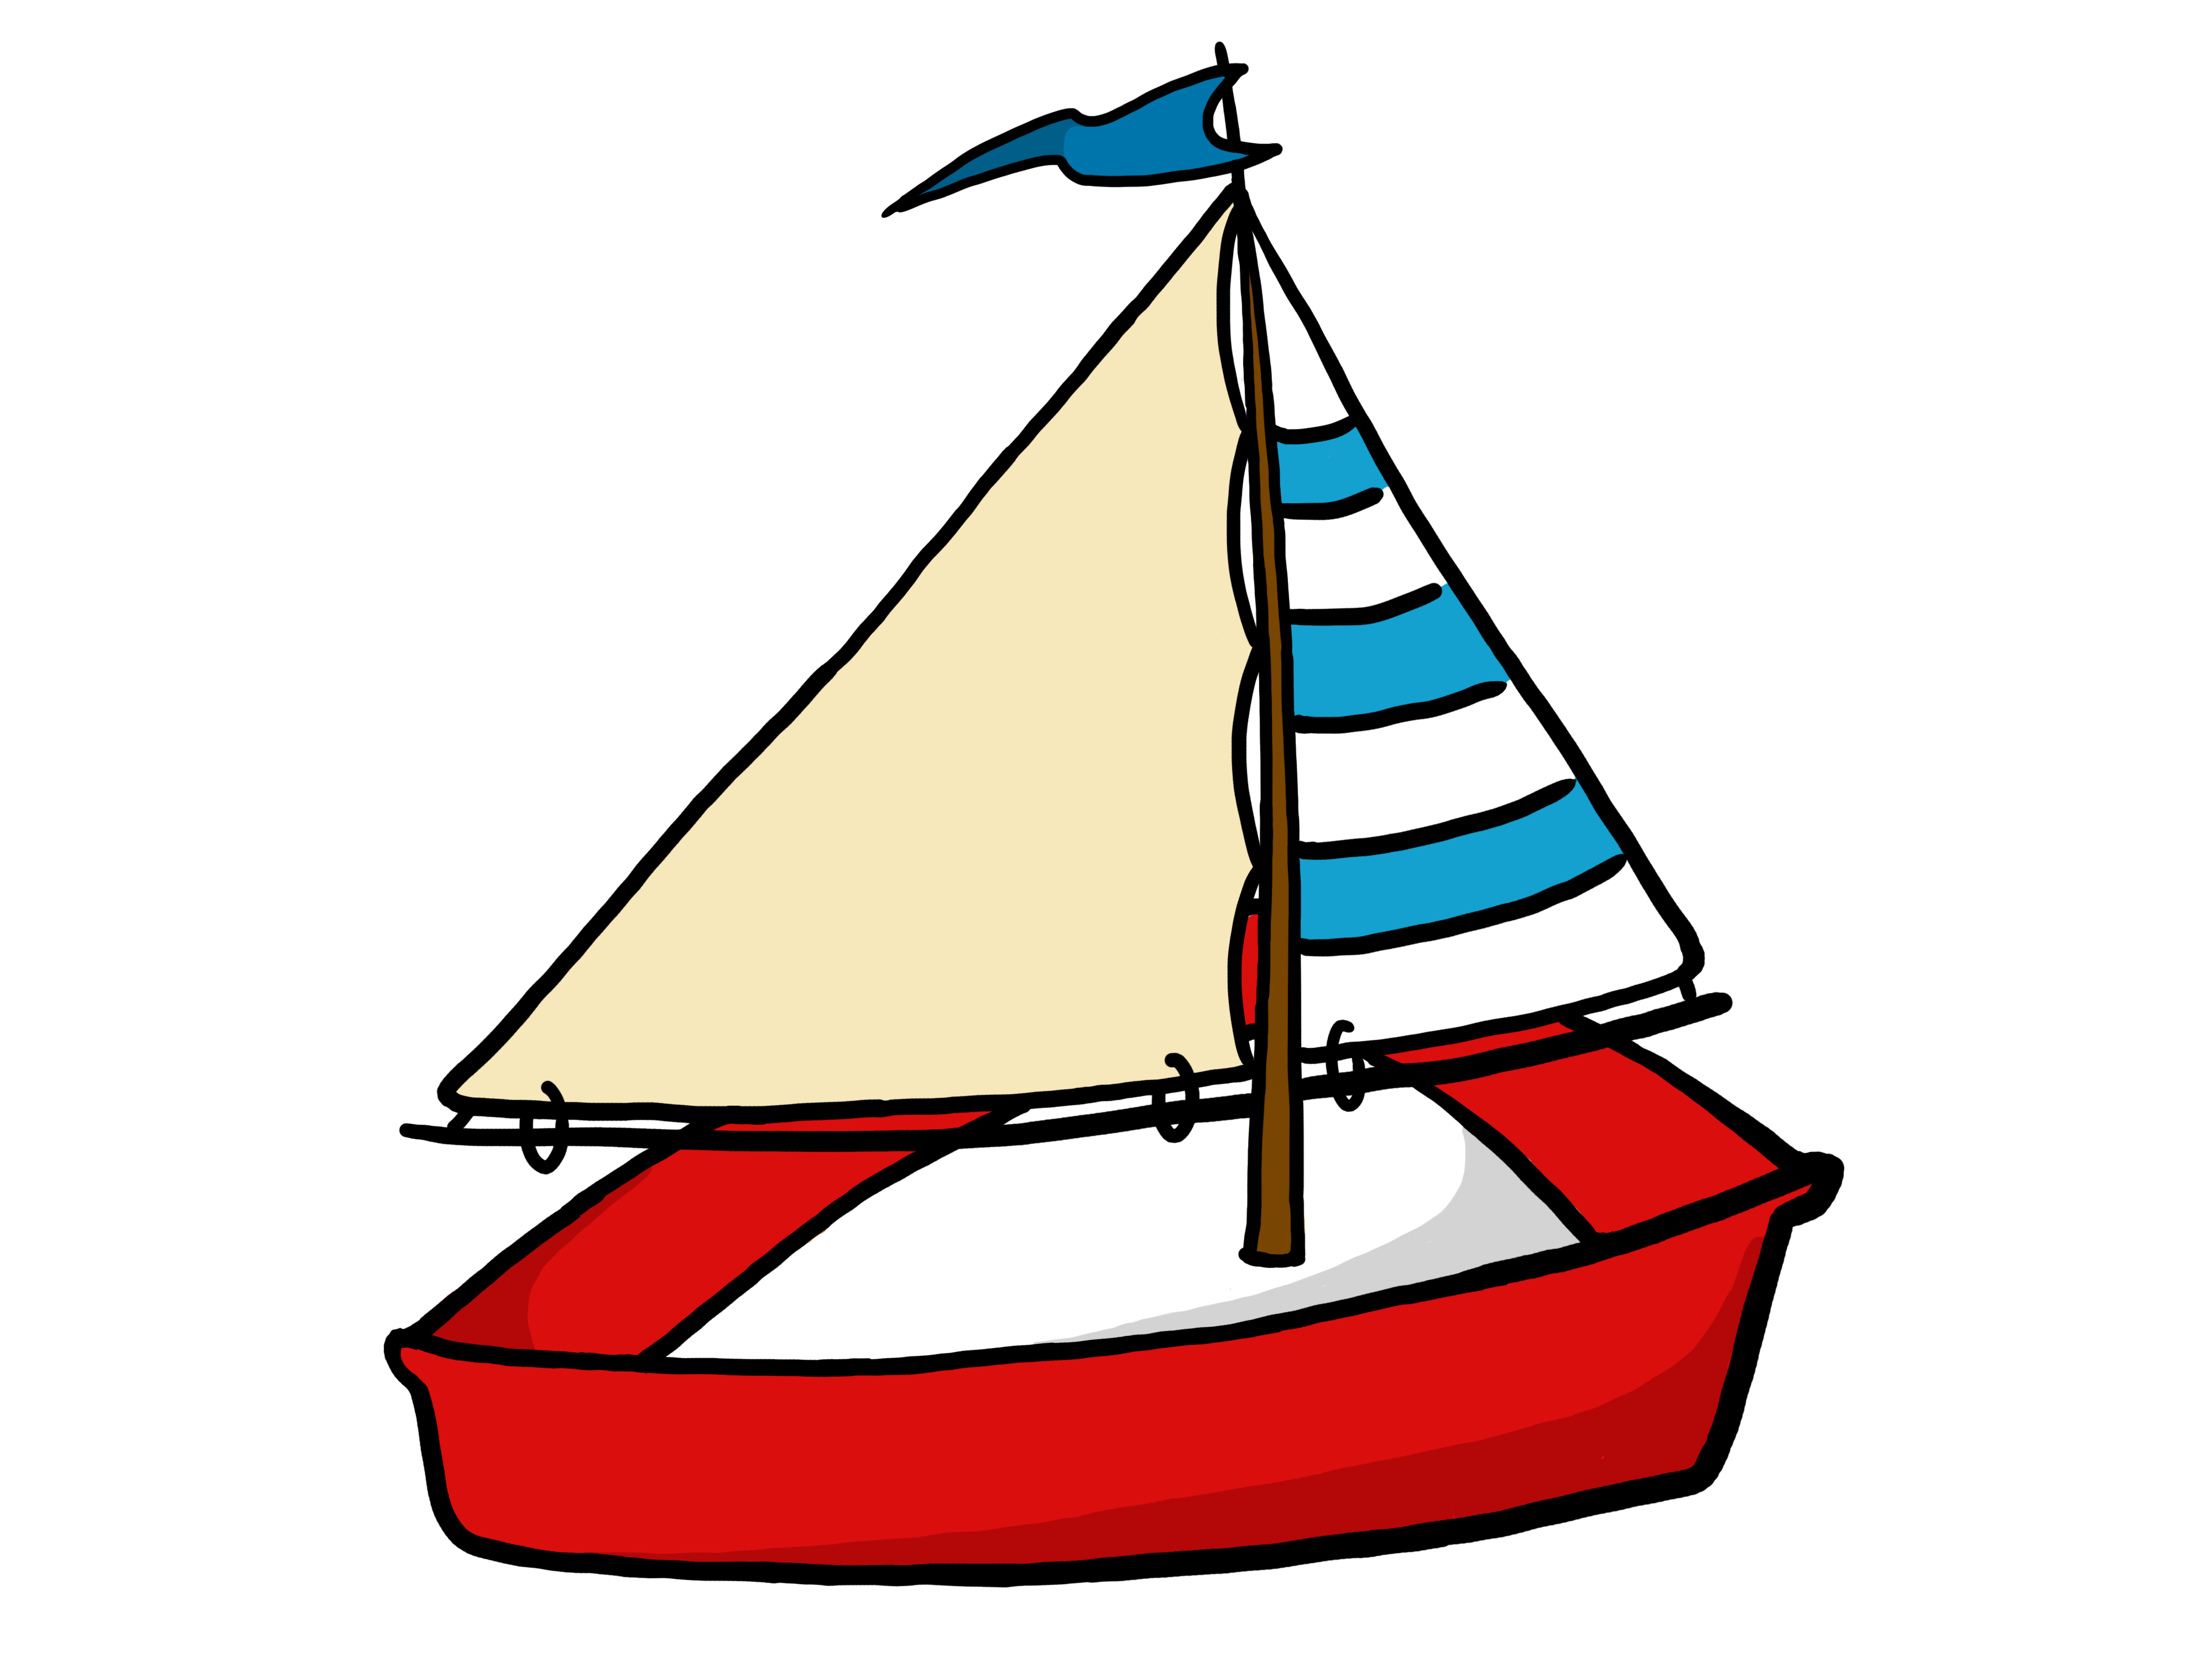 river boat clipart - photo #36